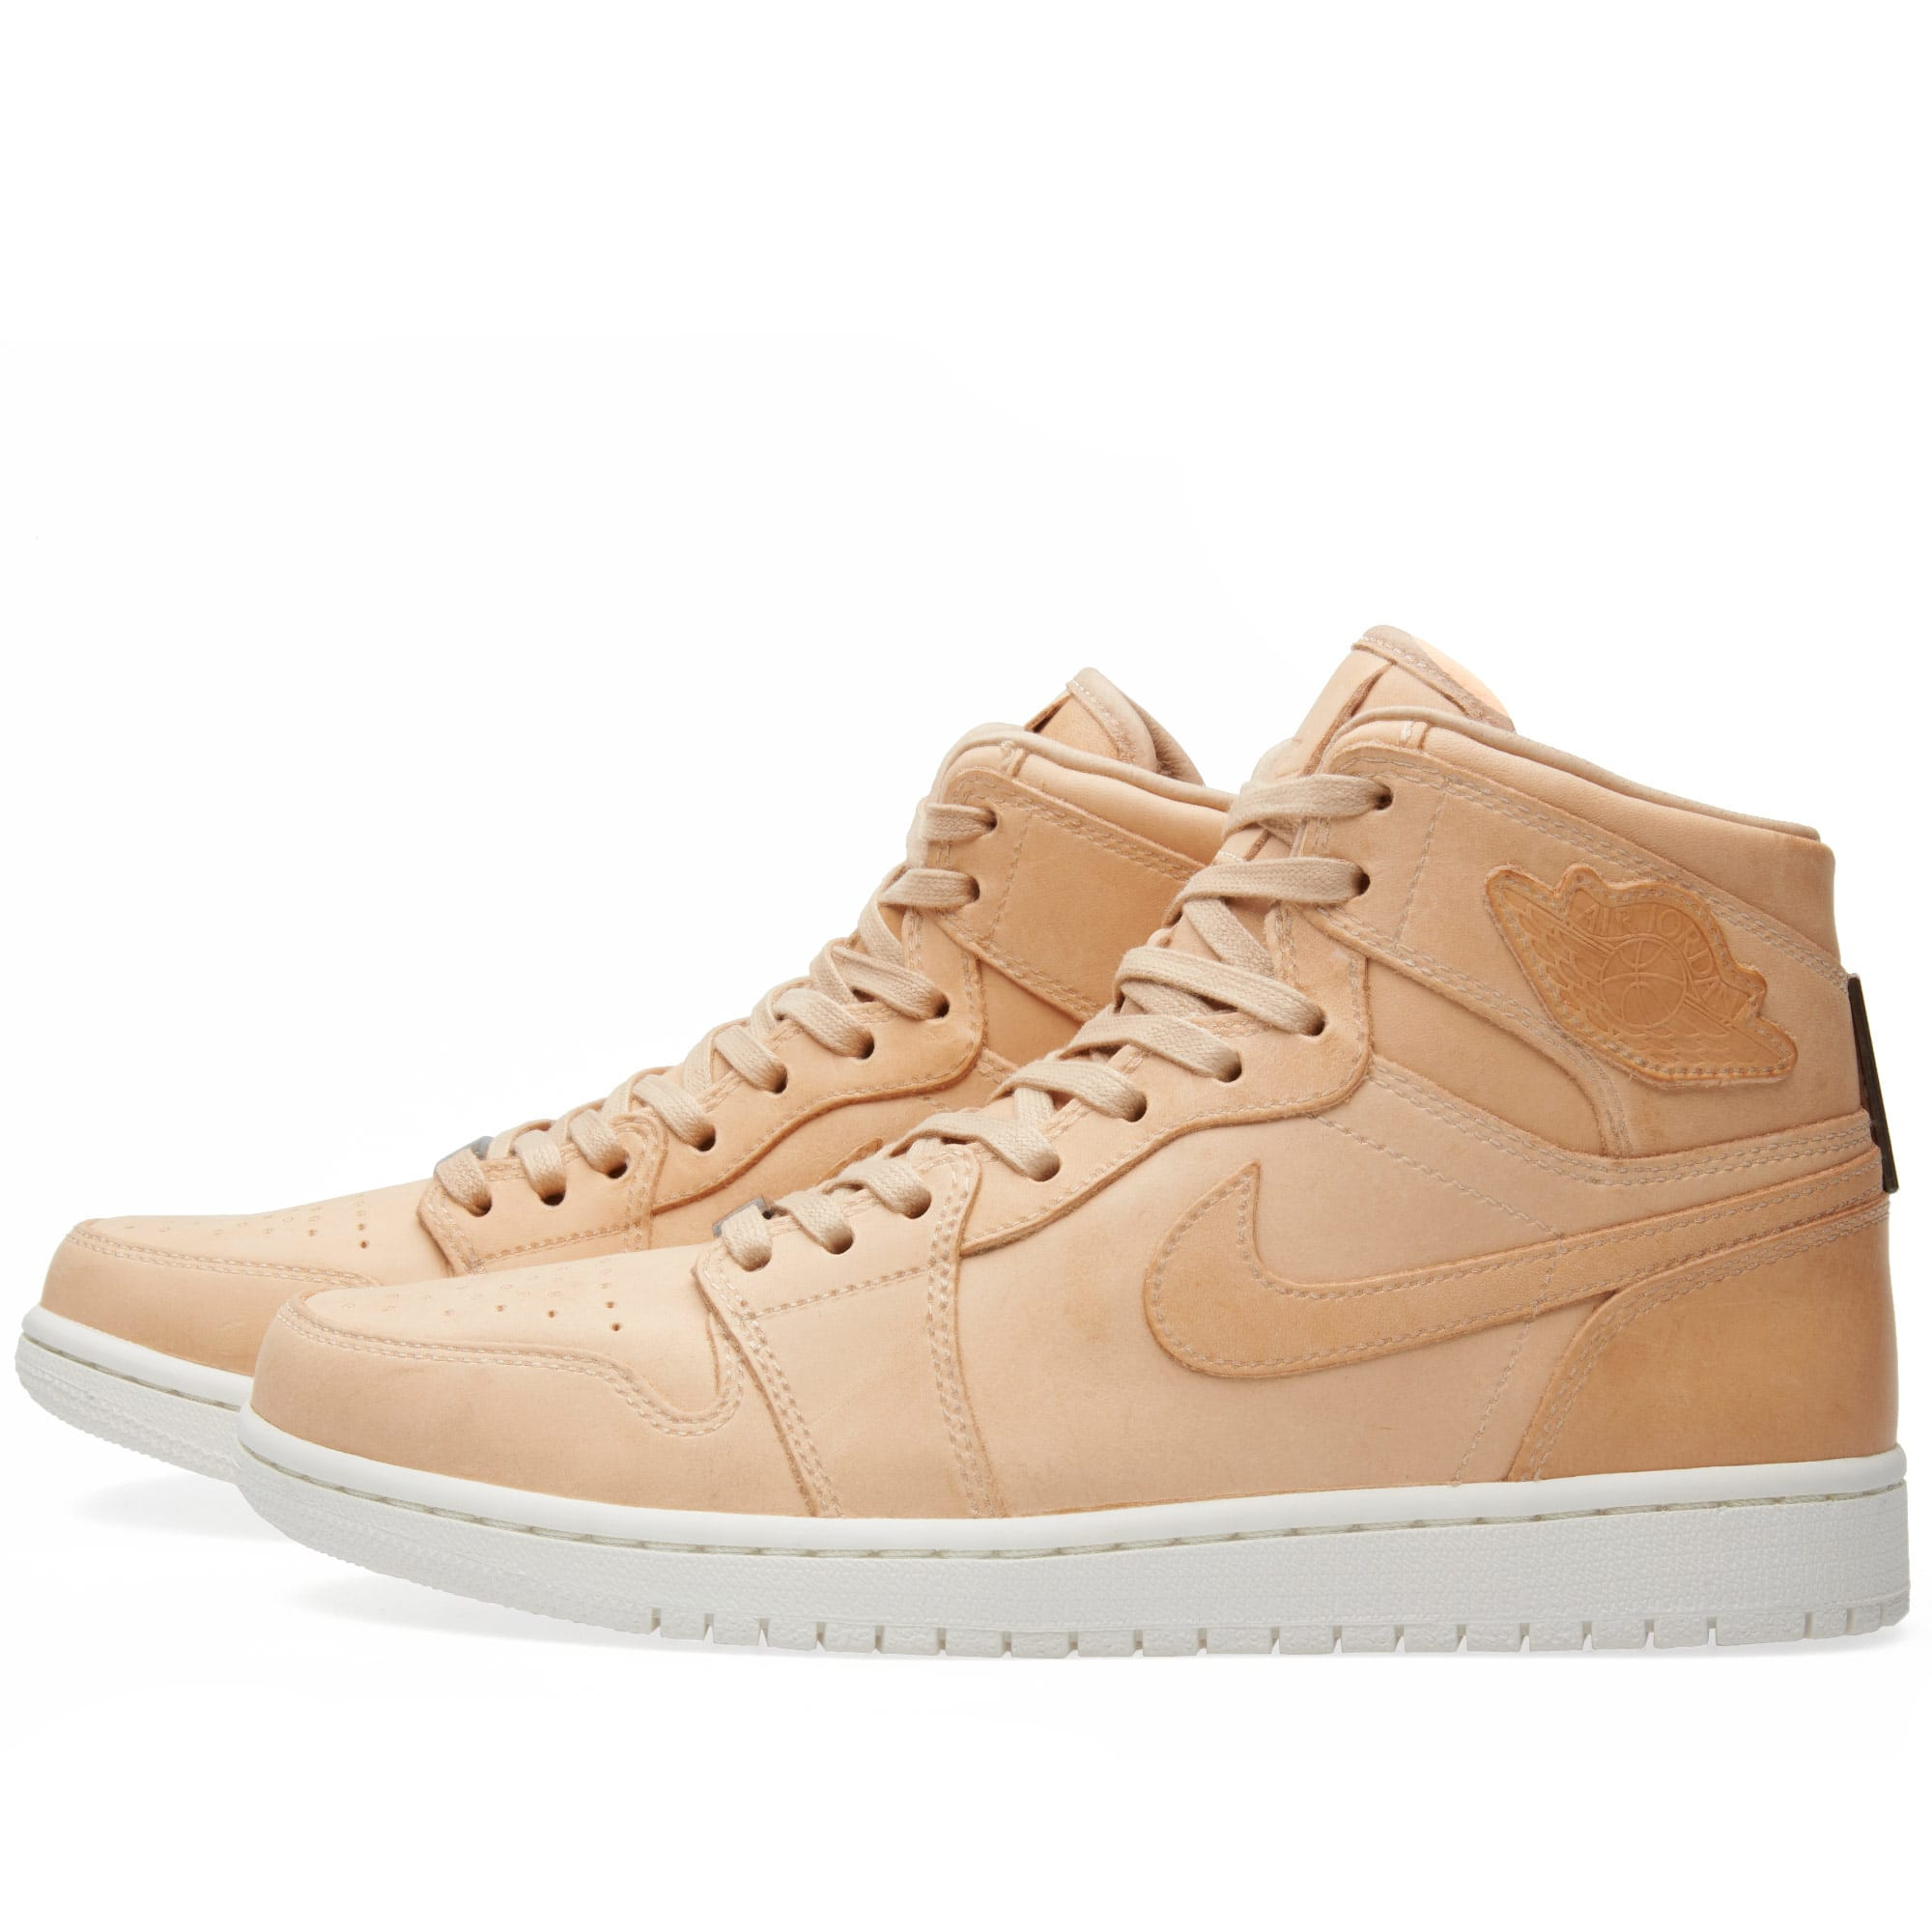 9ddcffecb76 Nike Air Jordan 1 Pinnacle. Vachetta Tan & Sail